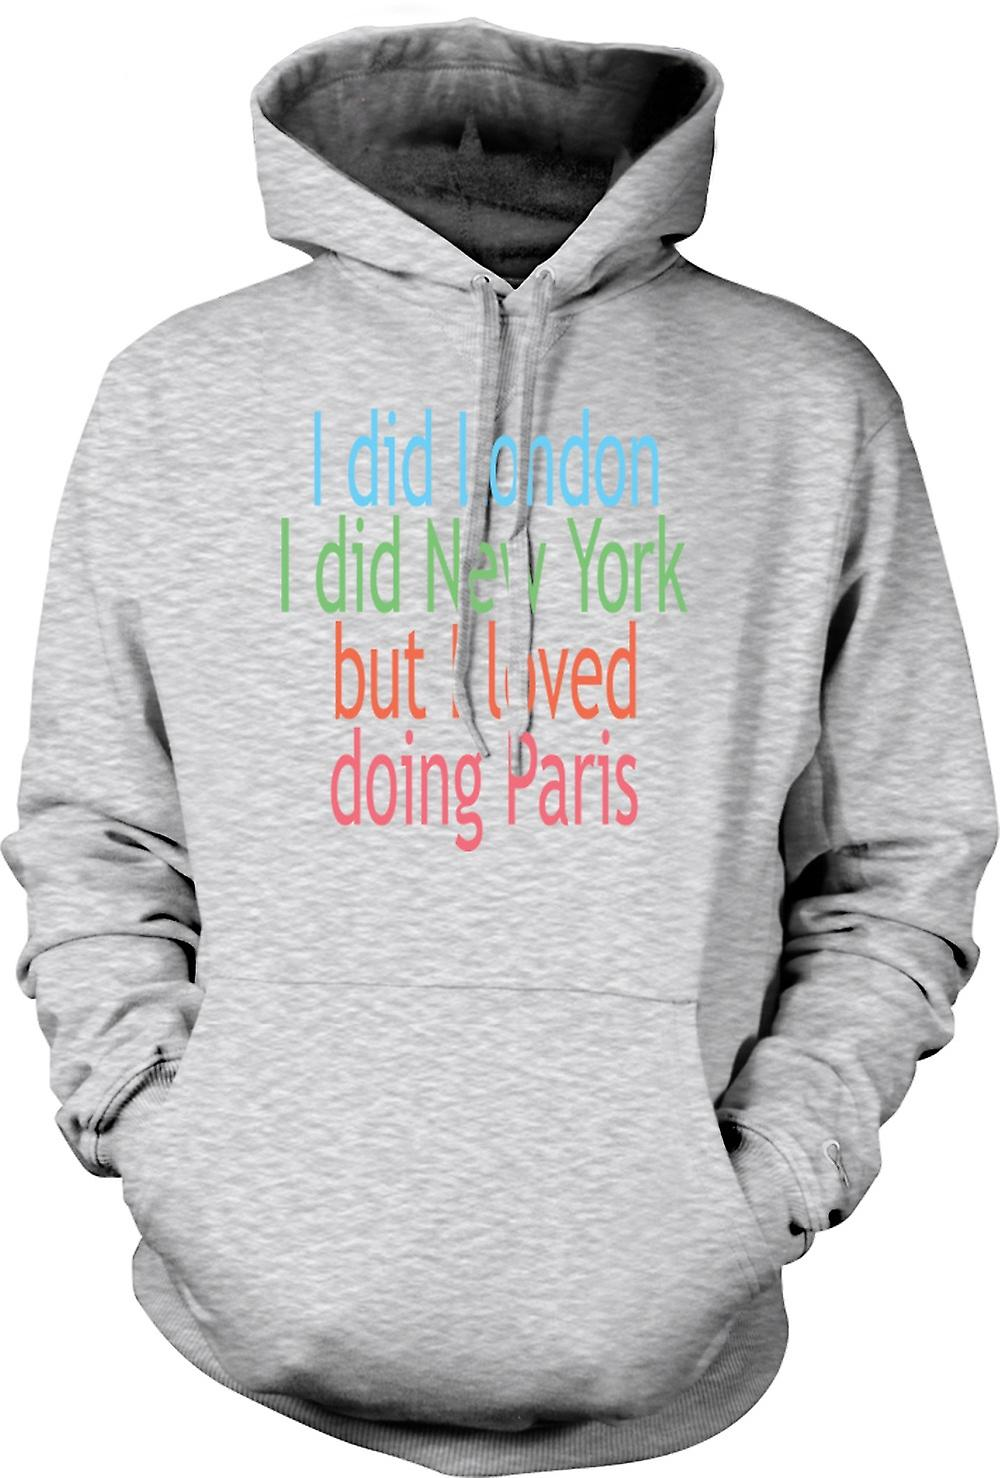 Mens Hoodie - I Did London I Did New York But I Loved Doing Paris